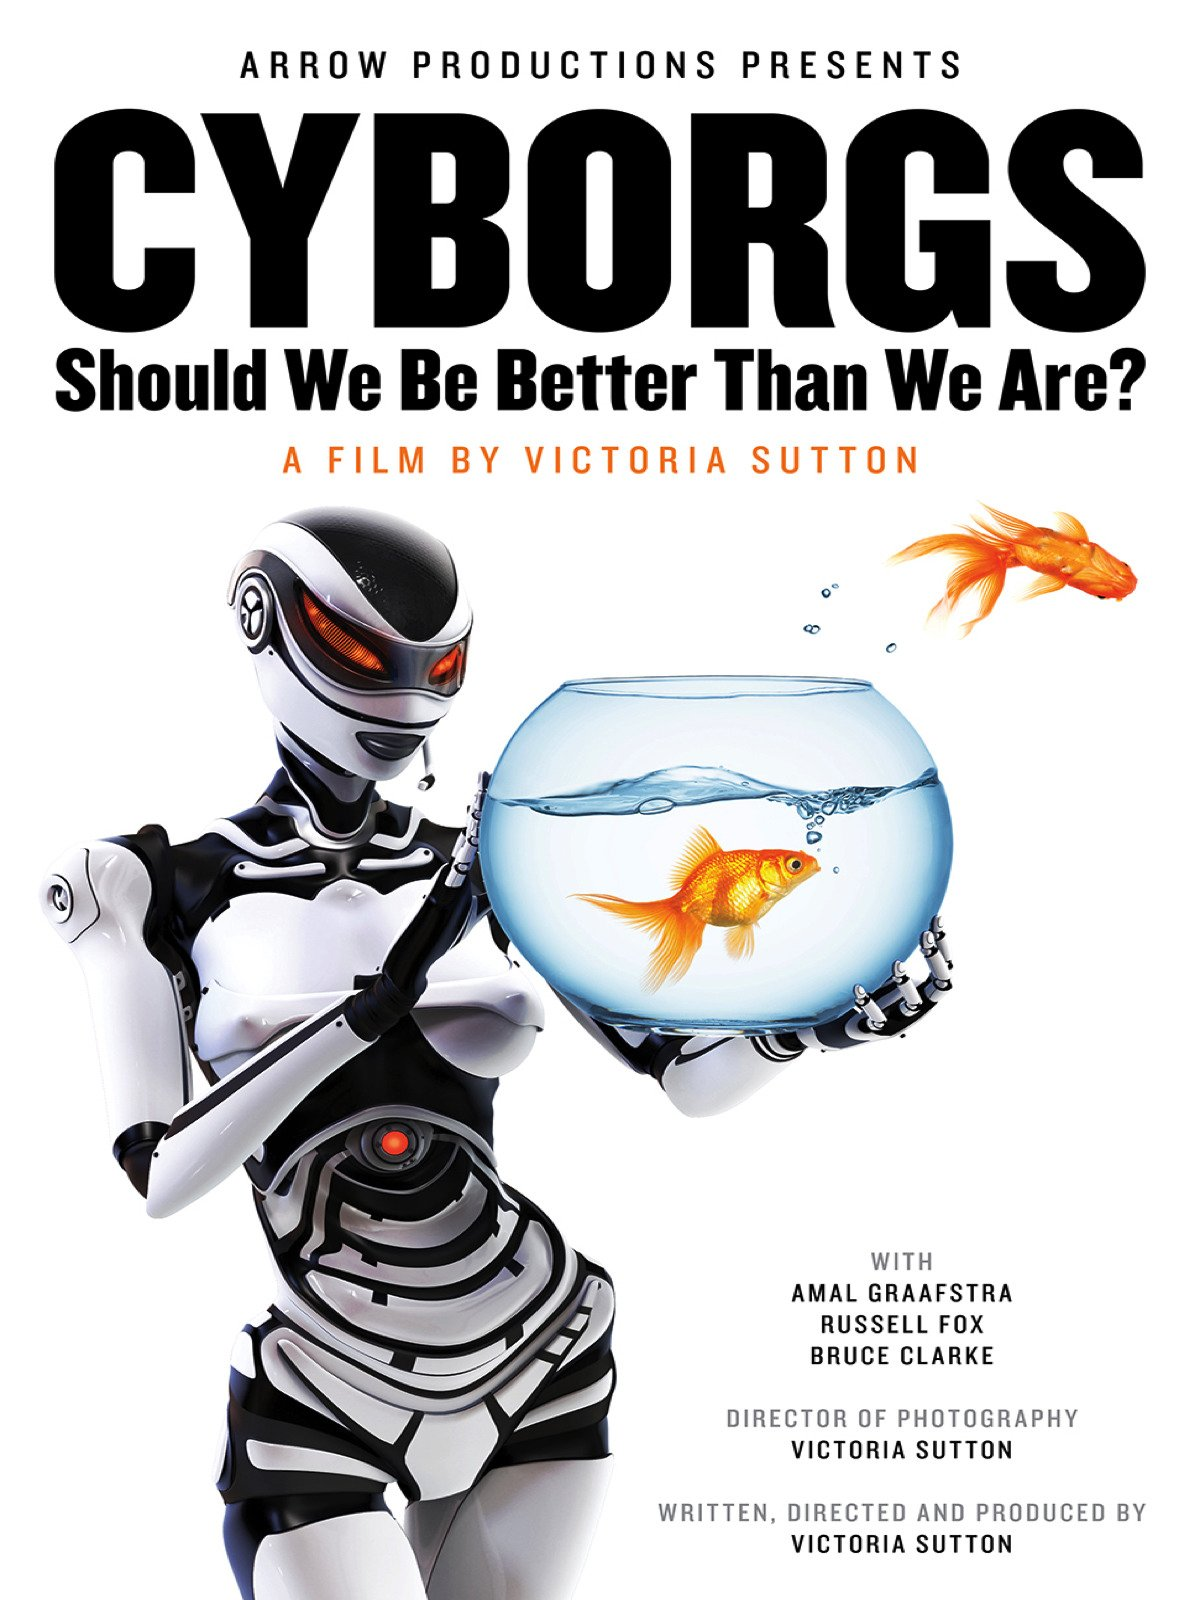 Cyborgs. Should we be better than we are?